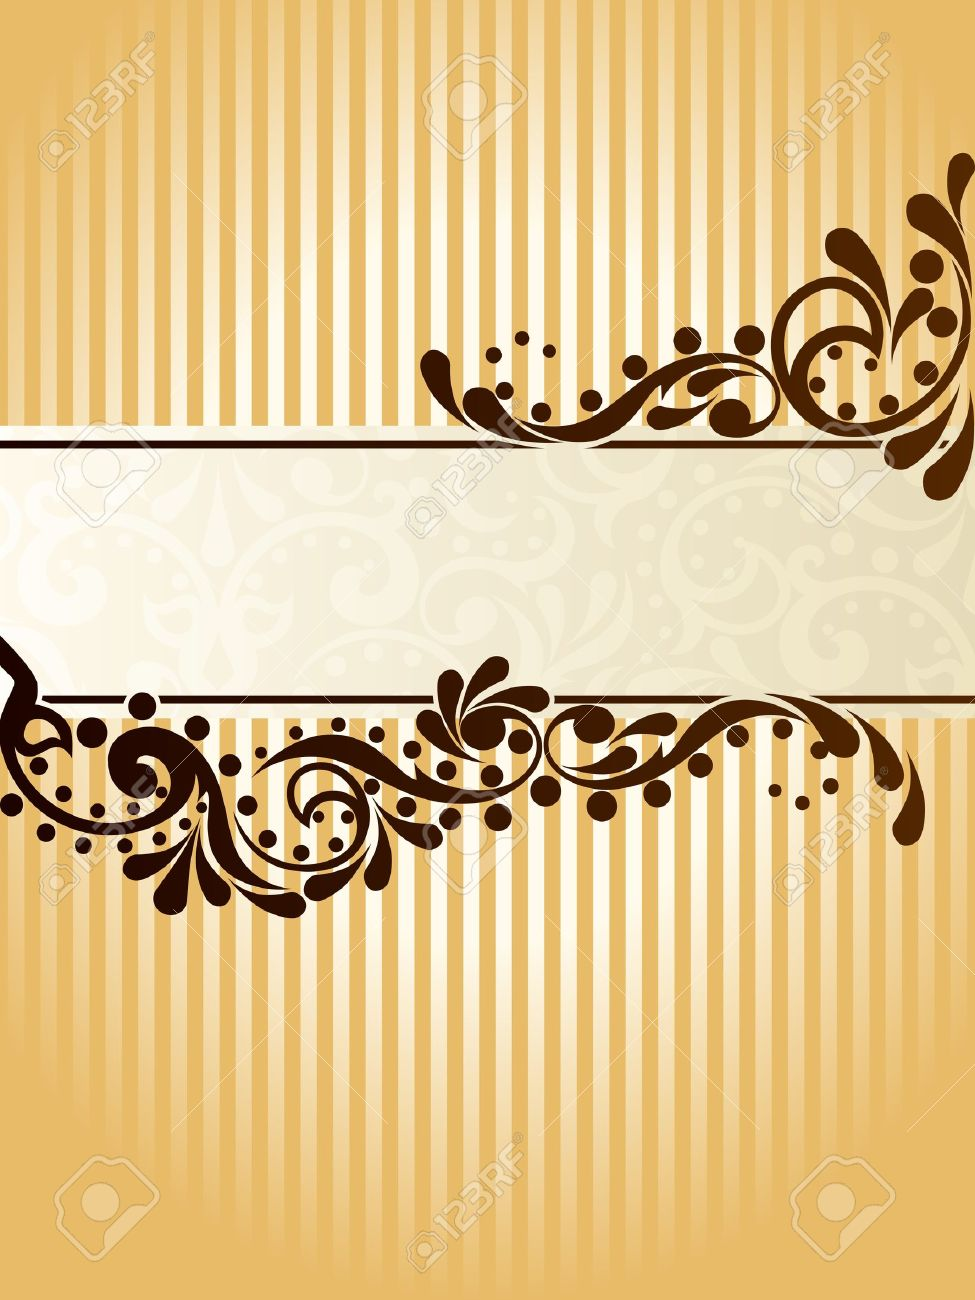 Elegant vertical banner design inspired by Victorian era designs. Graphics are grouped and in several layers for easy editing. The file can be scaled to any size. Stock Vector - 5602187